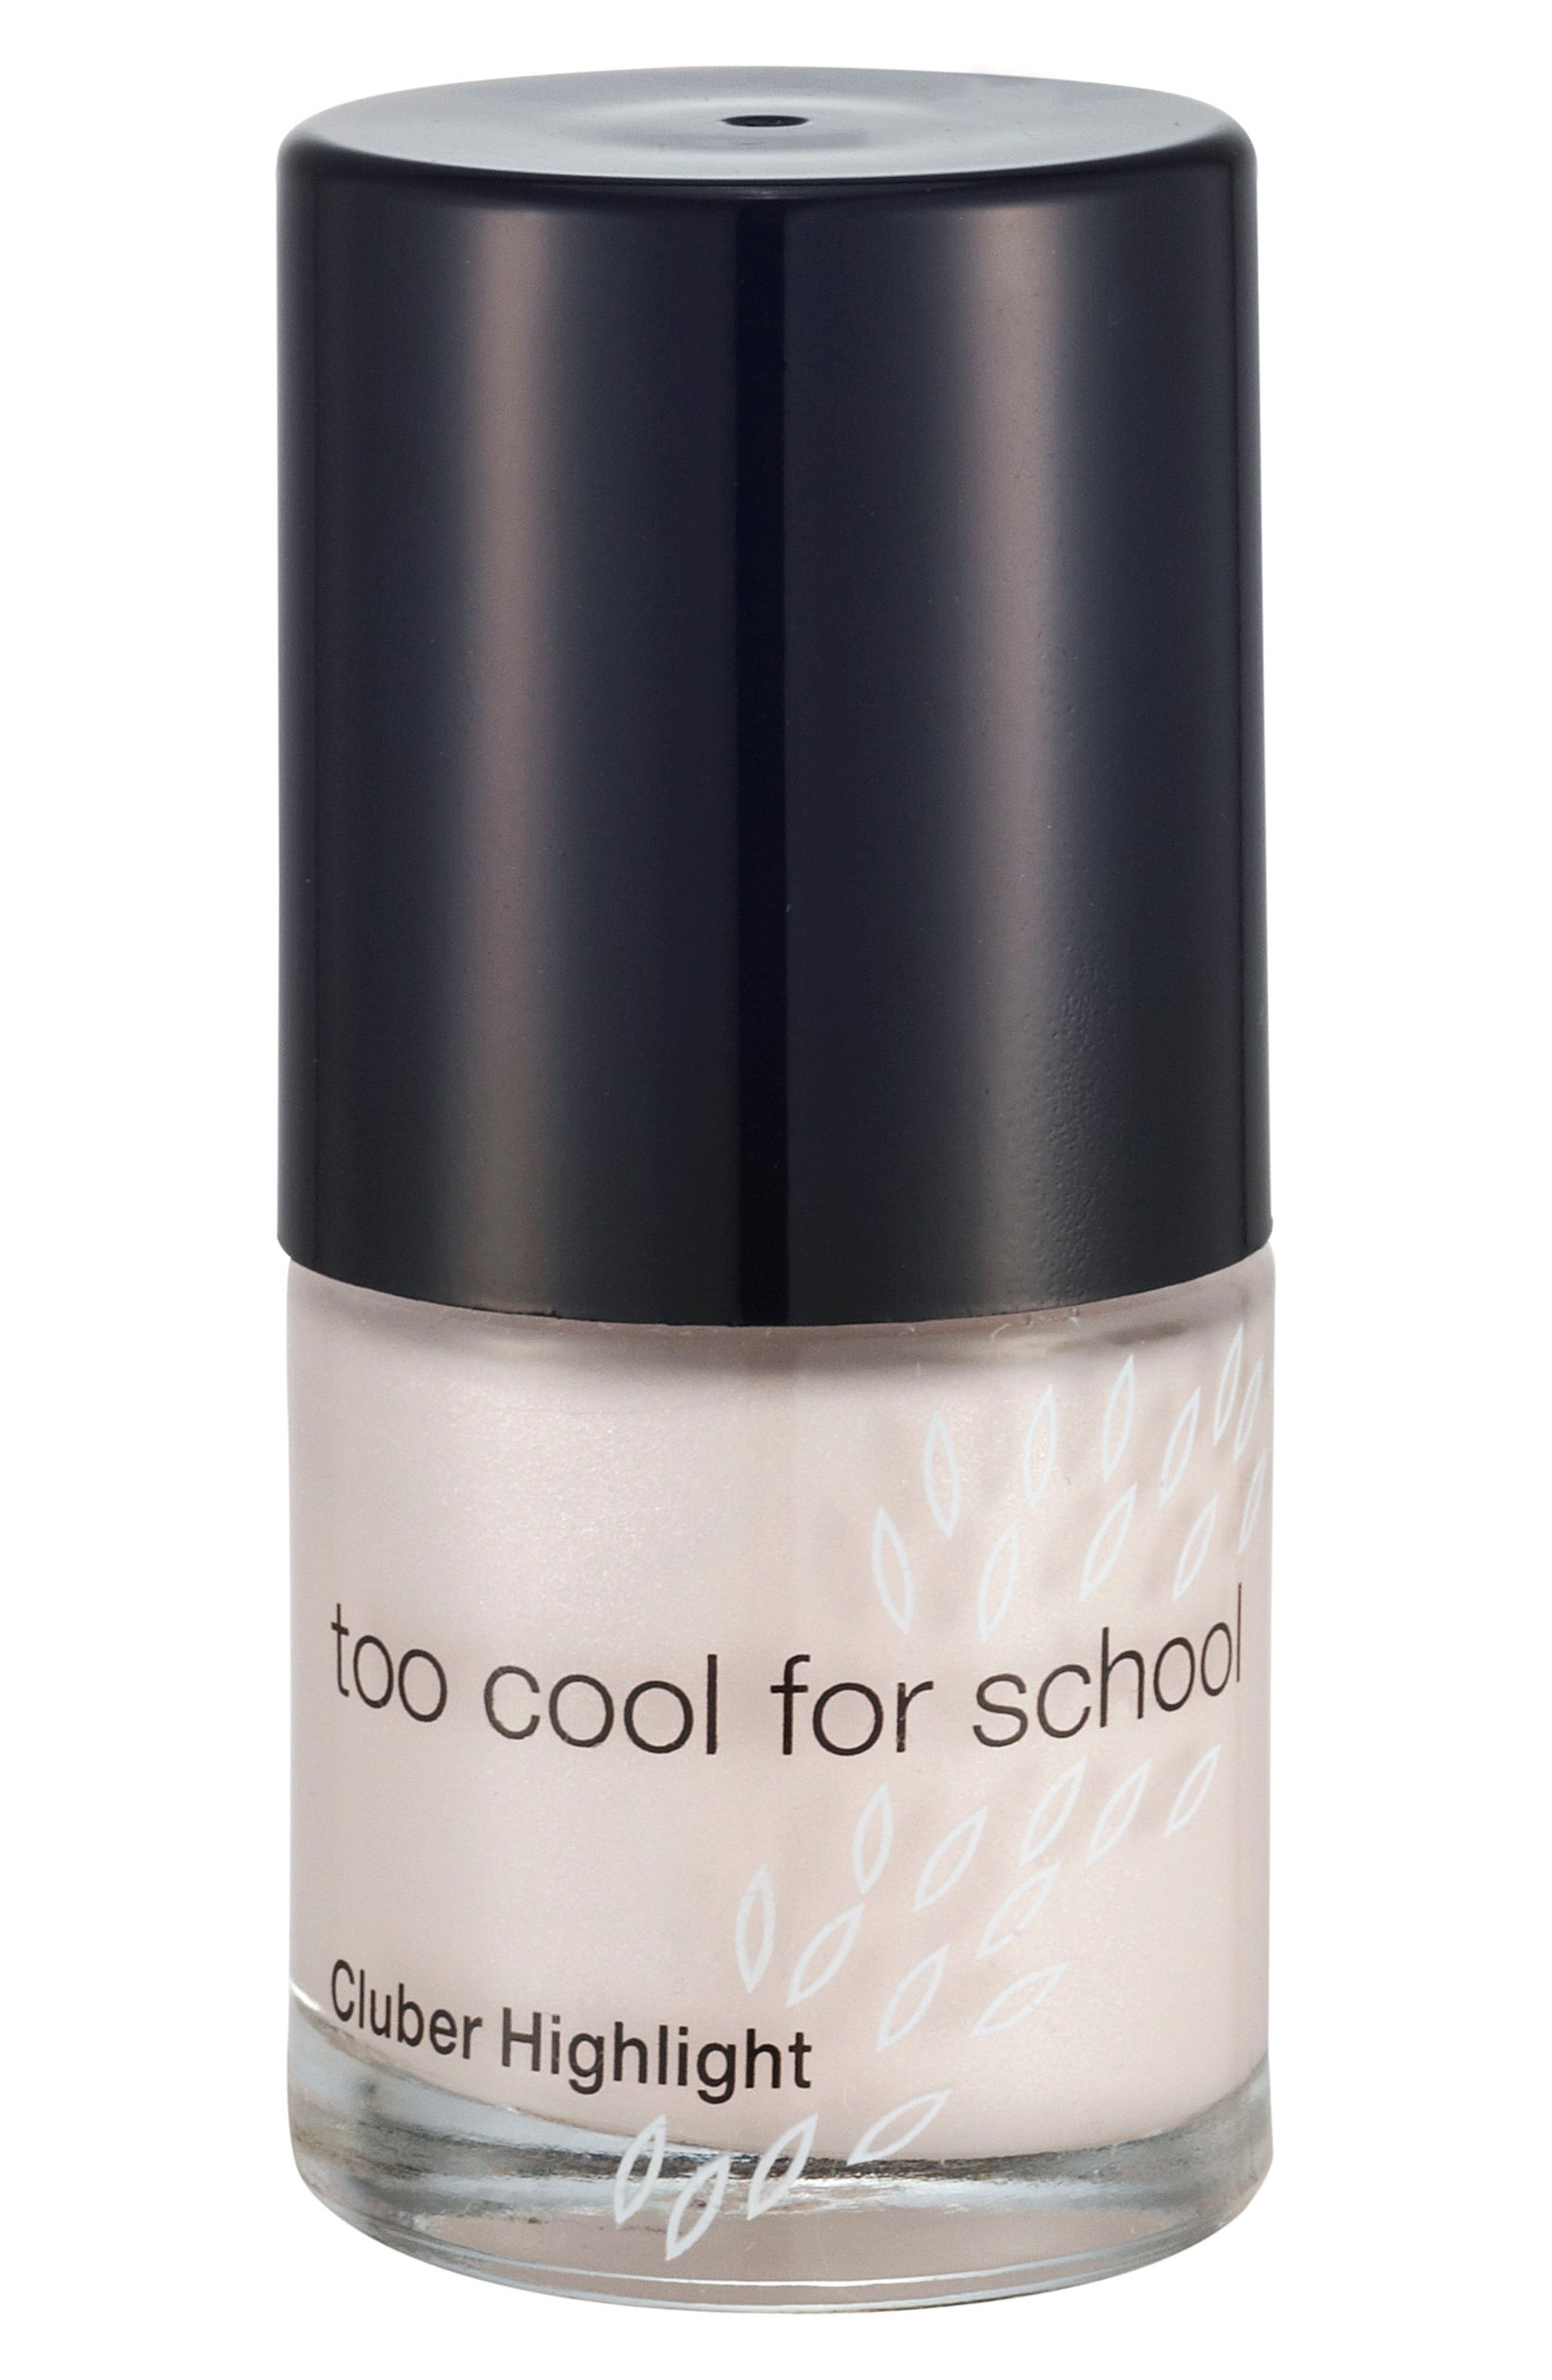 Main Image - Too Cool for School Cluber Highlighter